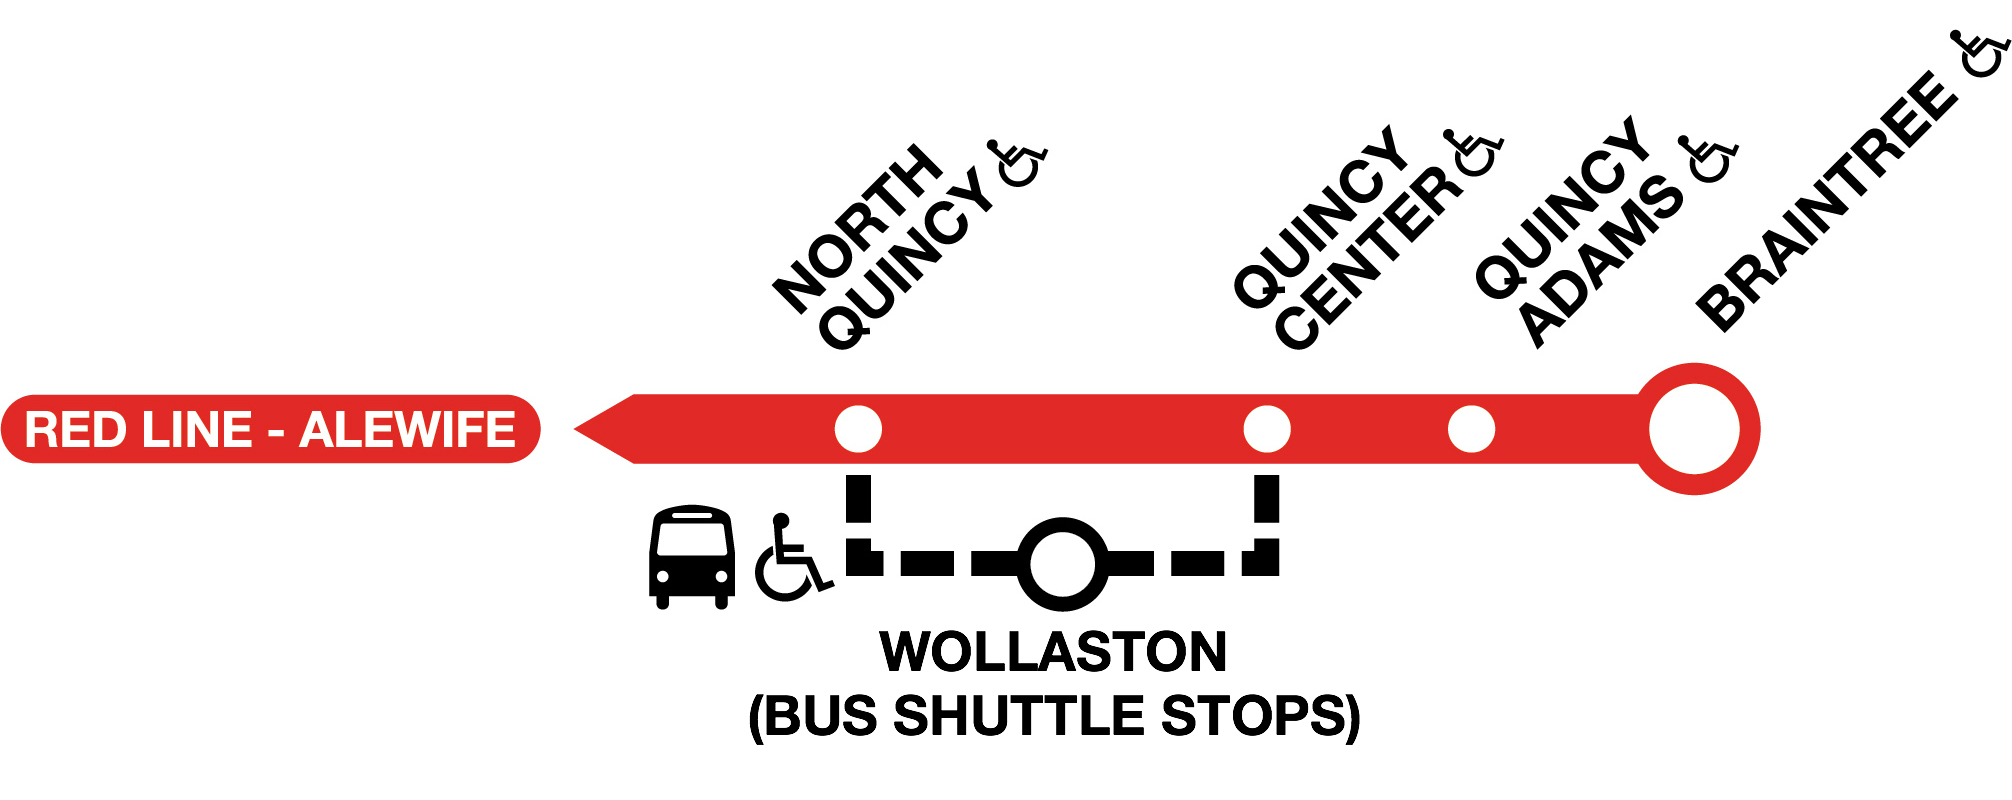 Diversion graphic showing the Red Line, with Wollaston omitted and shown along a black dotted line underneath the Red Line, signifying bus shuttles running from North Quincy and Quincy Center Stations, stopping at Wollaston.